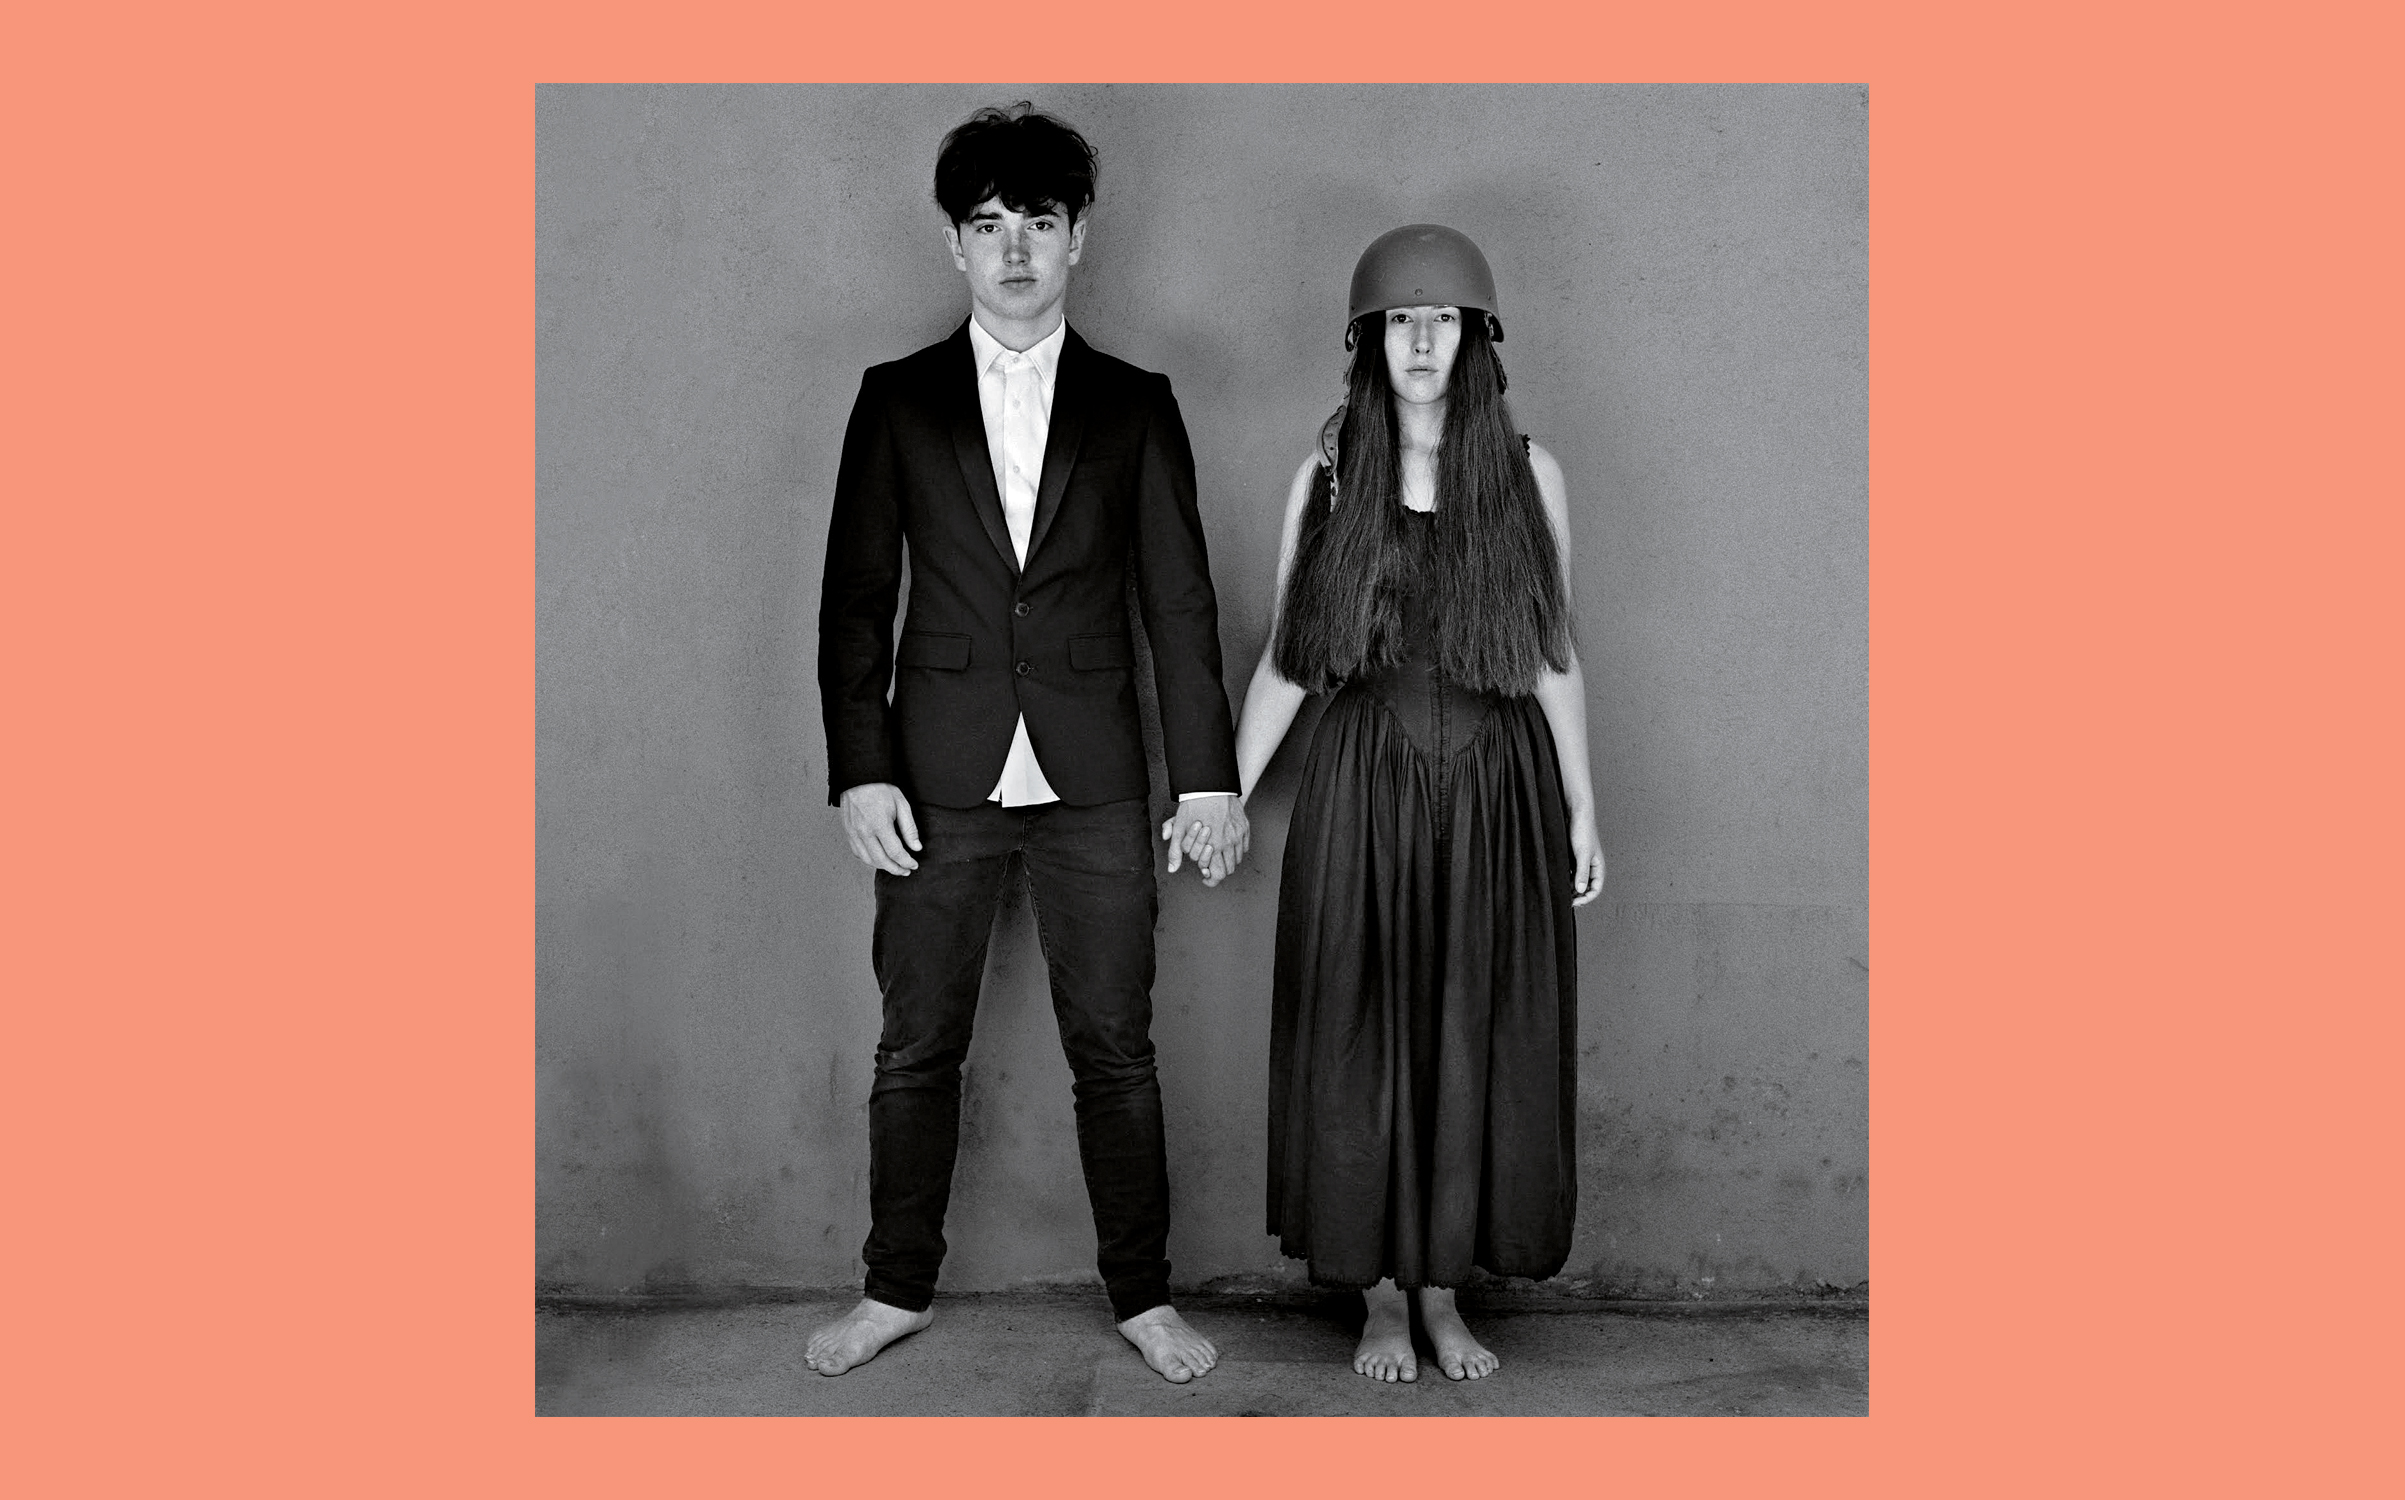 The album artwork, shot by longtime U2 photographer Anton Corbijn, shows Bono's son Eli and the Edge's daughter Sian holding hands.